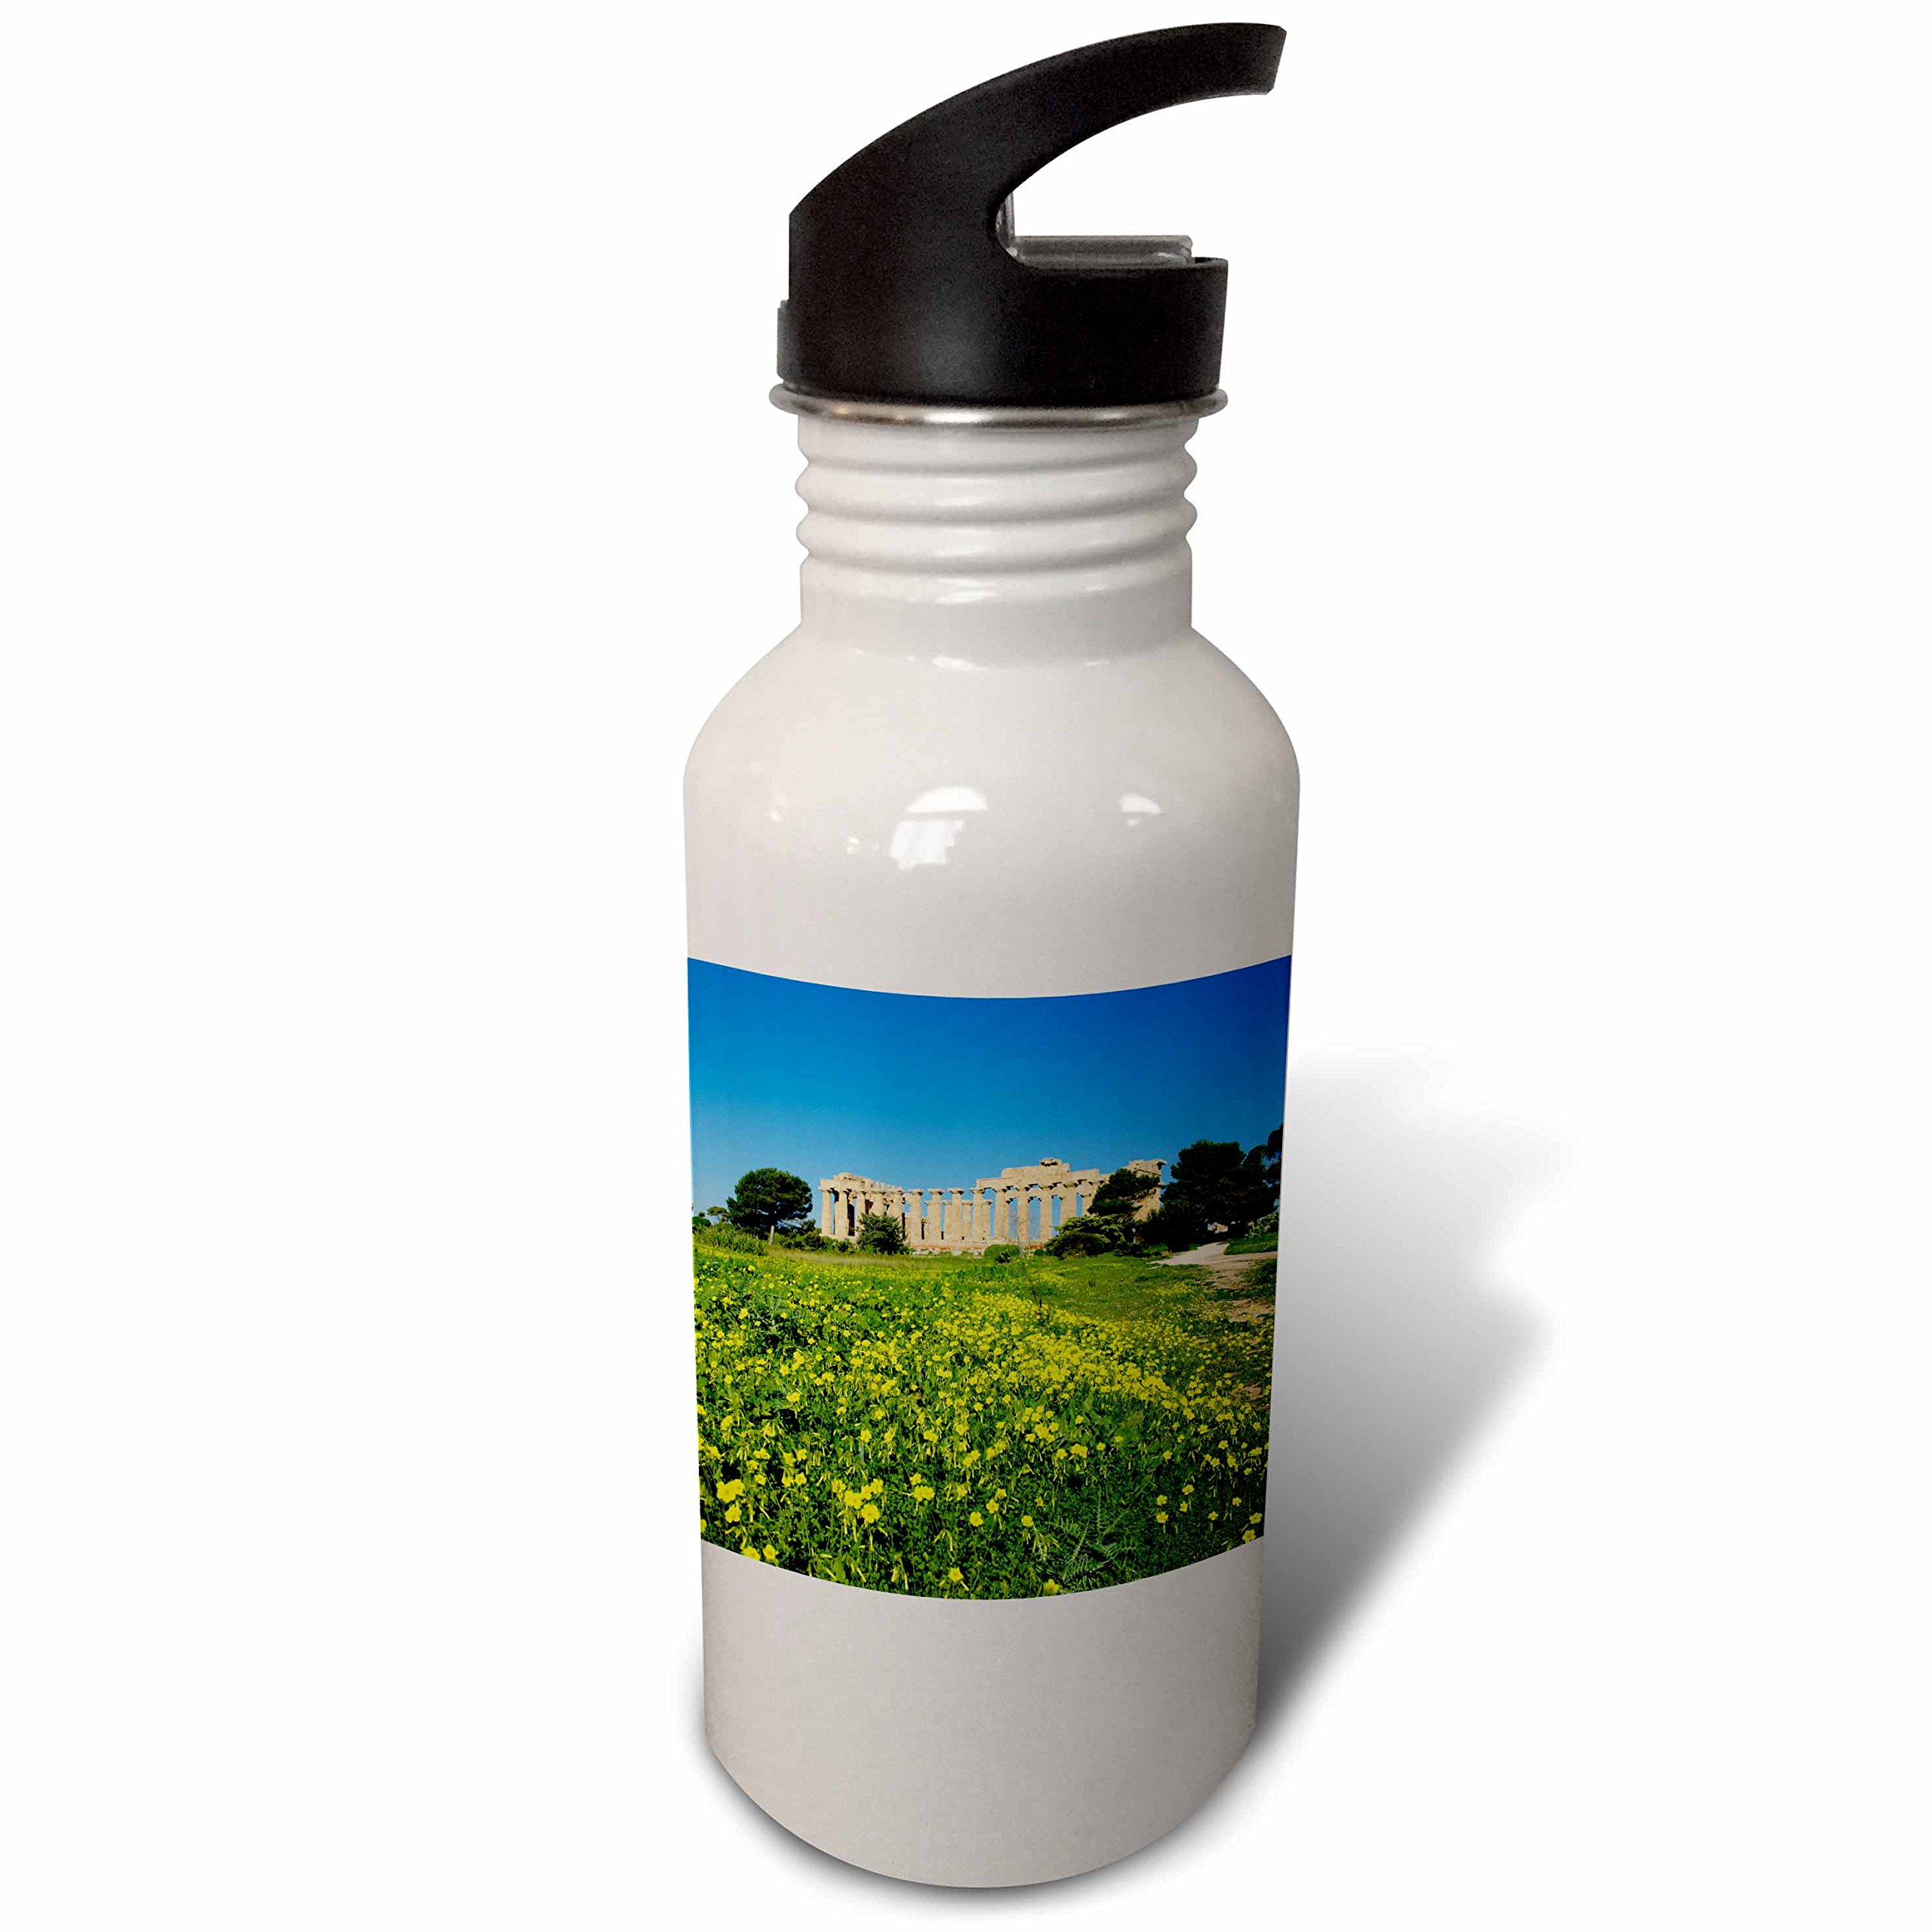 3dRose Danita Delimont - Ruins - Italy, Sicily, old city of Selinunte, ruins of the Greek temple - Flip Straw 21oz Water Bottle (wb_277617_2) by 3dRose